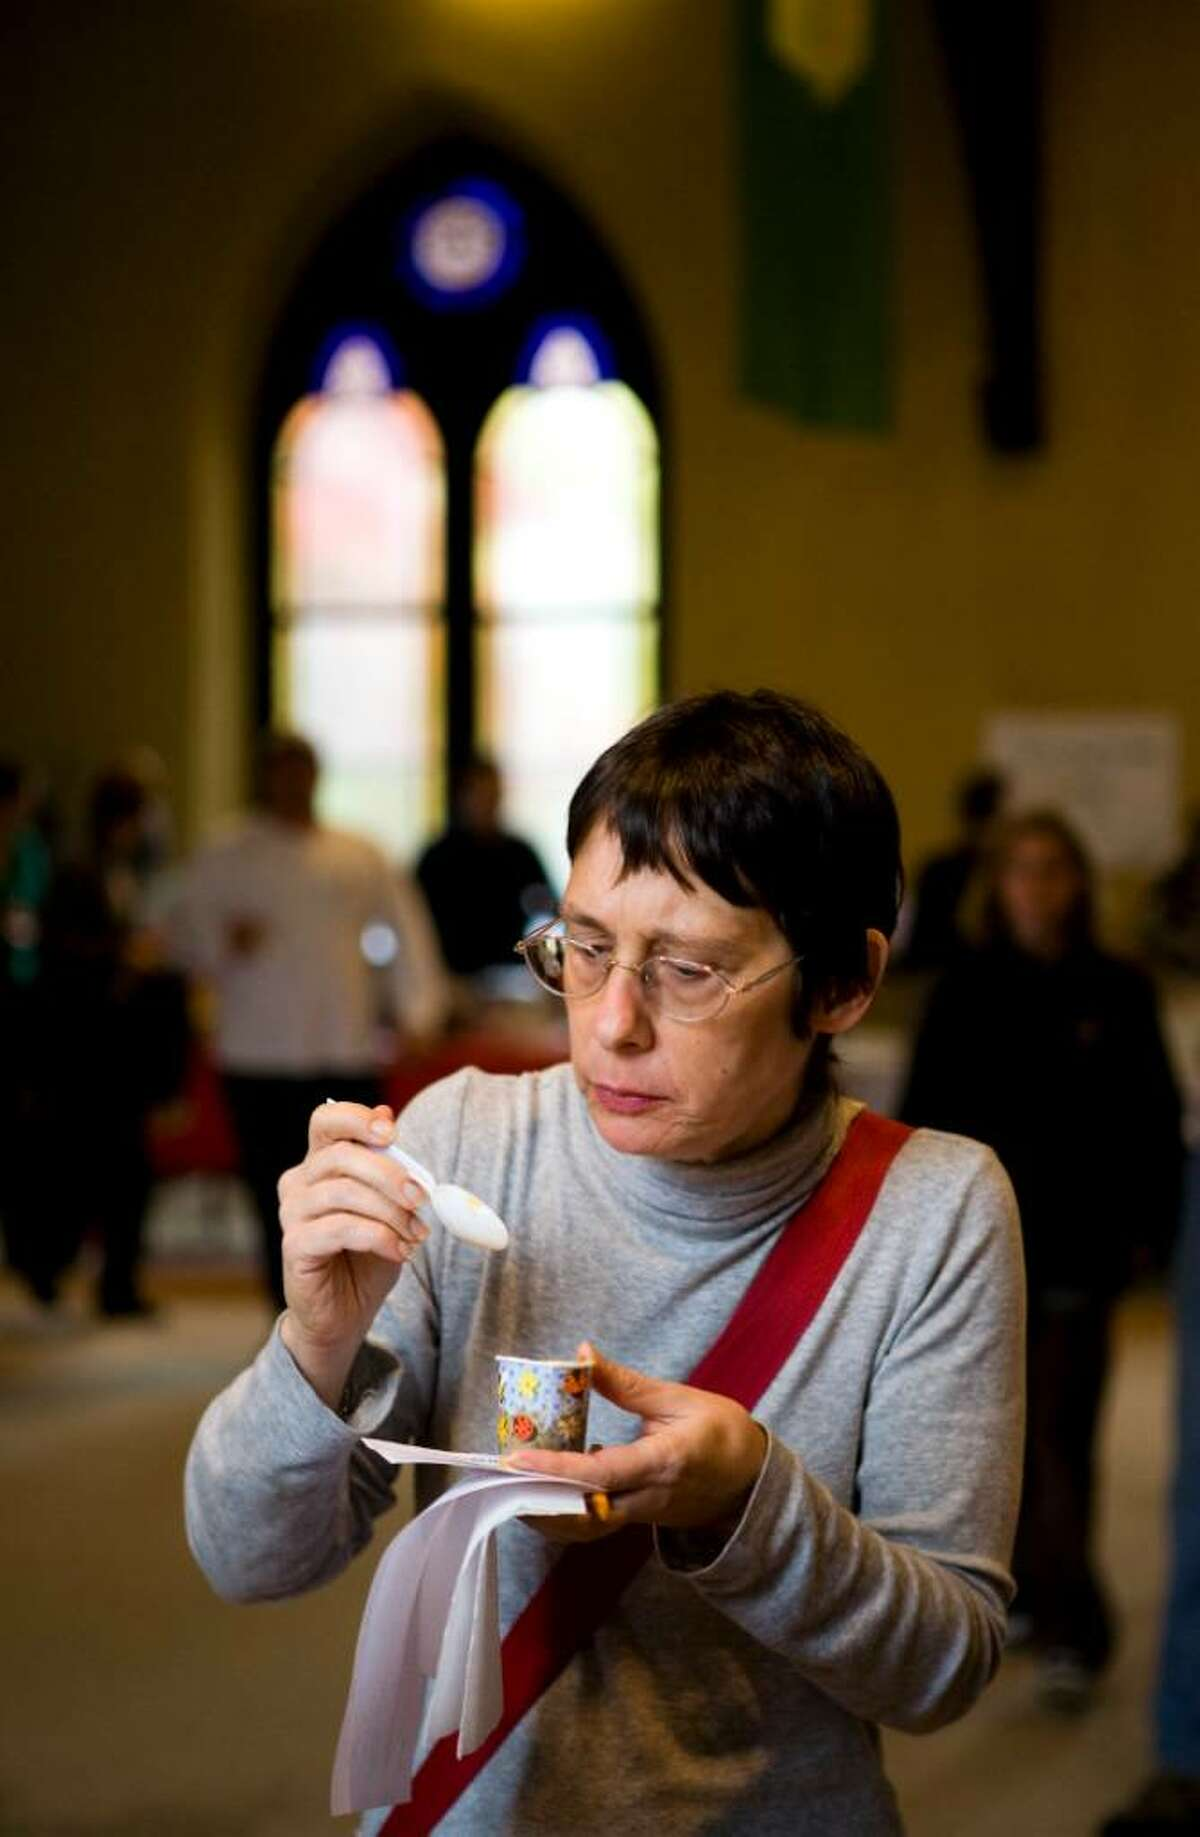 Leslie Weinberg of Stamford samples the chili at the 2nd annual Pro-Am Charity Chili cook-off at the Unitarian Universalist Society.